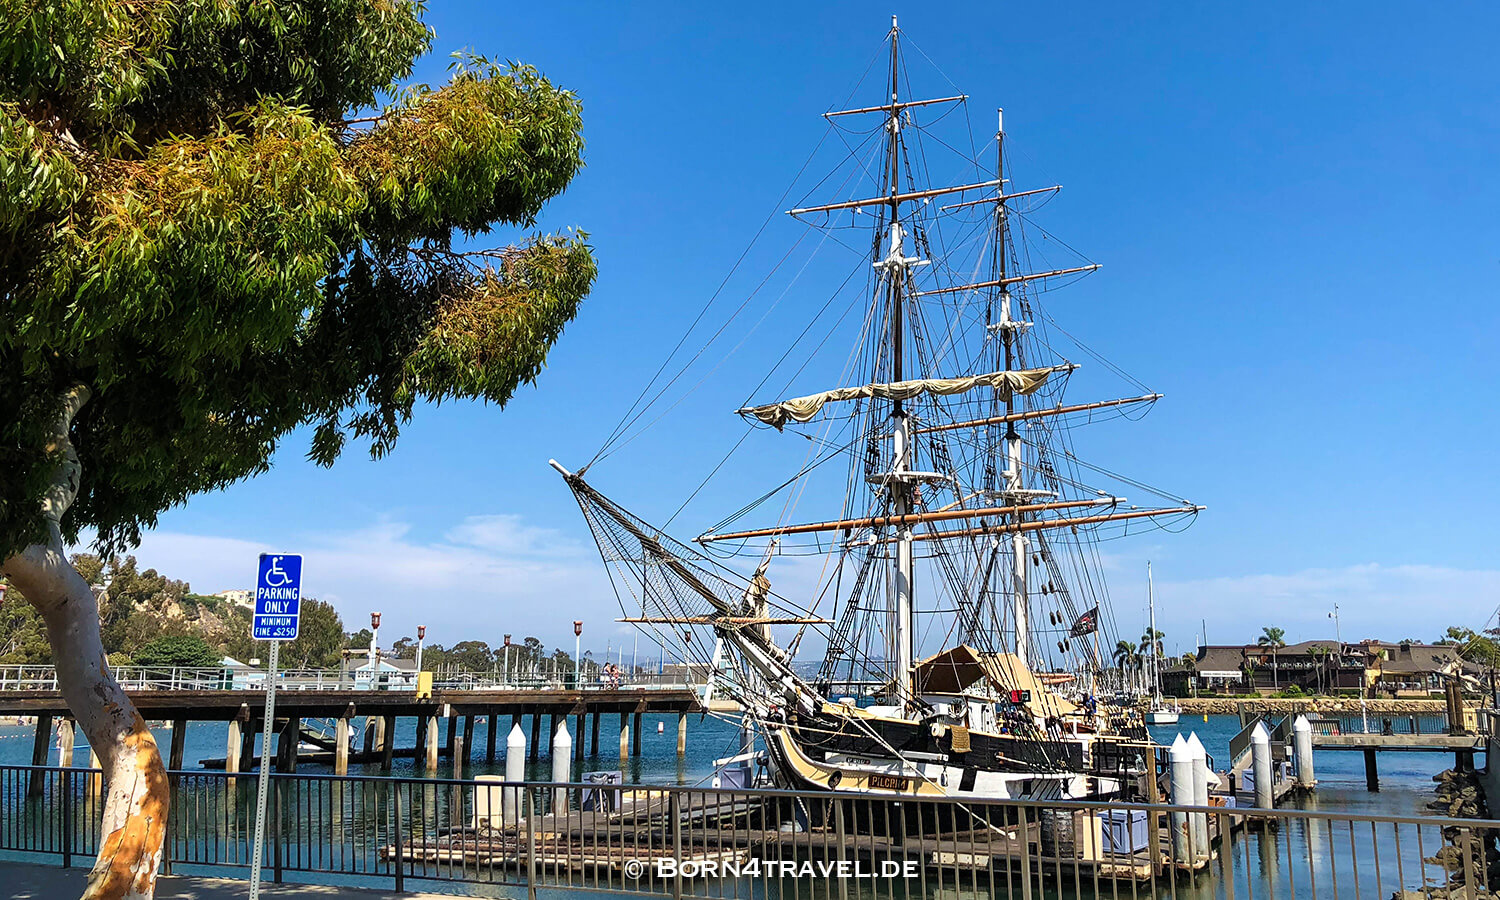 Pilgrim, Dana Point Harbor,Orange County, Dana Point, California,USA,born4travel.de